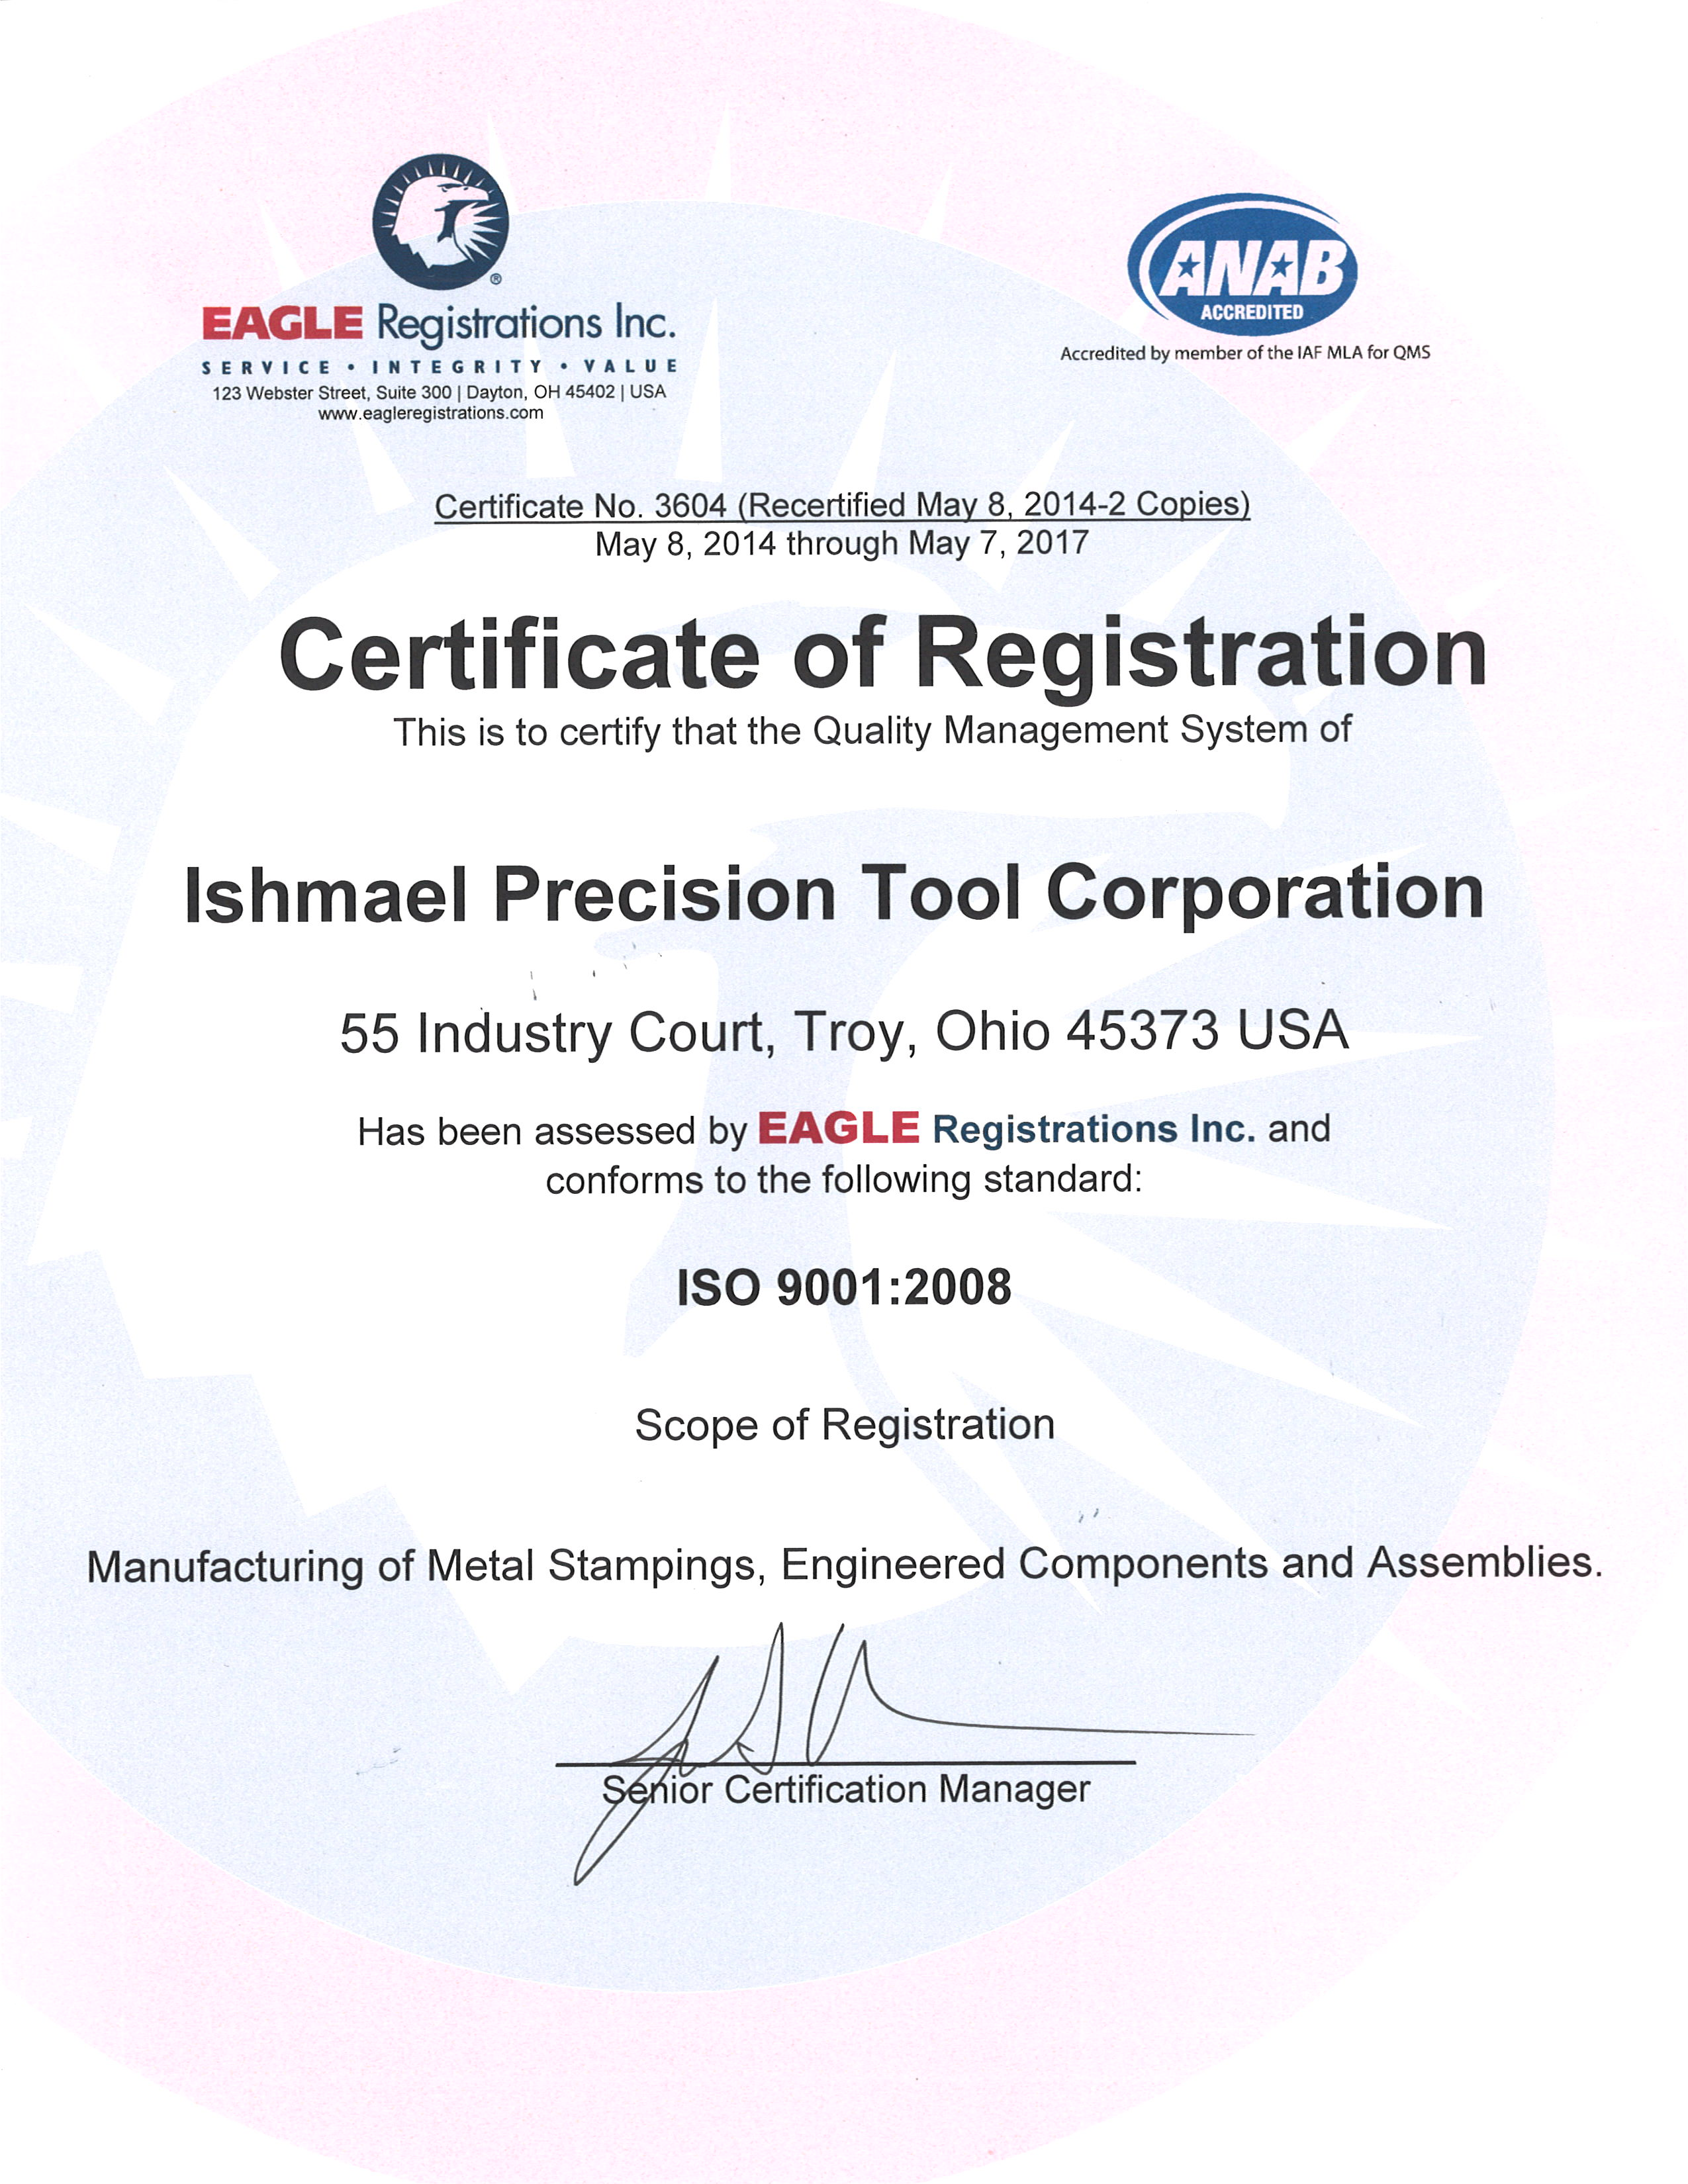 Iso 9001 Ts 16949 Quality Certifications For Ishmael Precision Tool